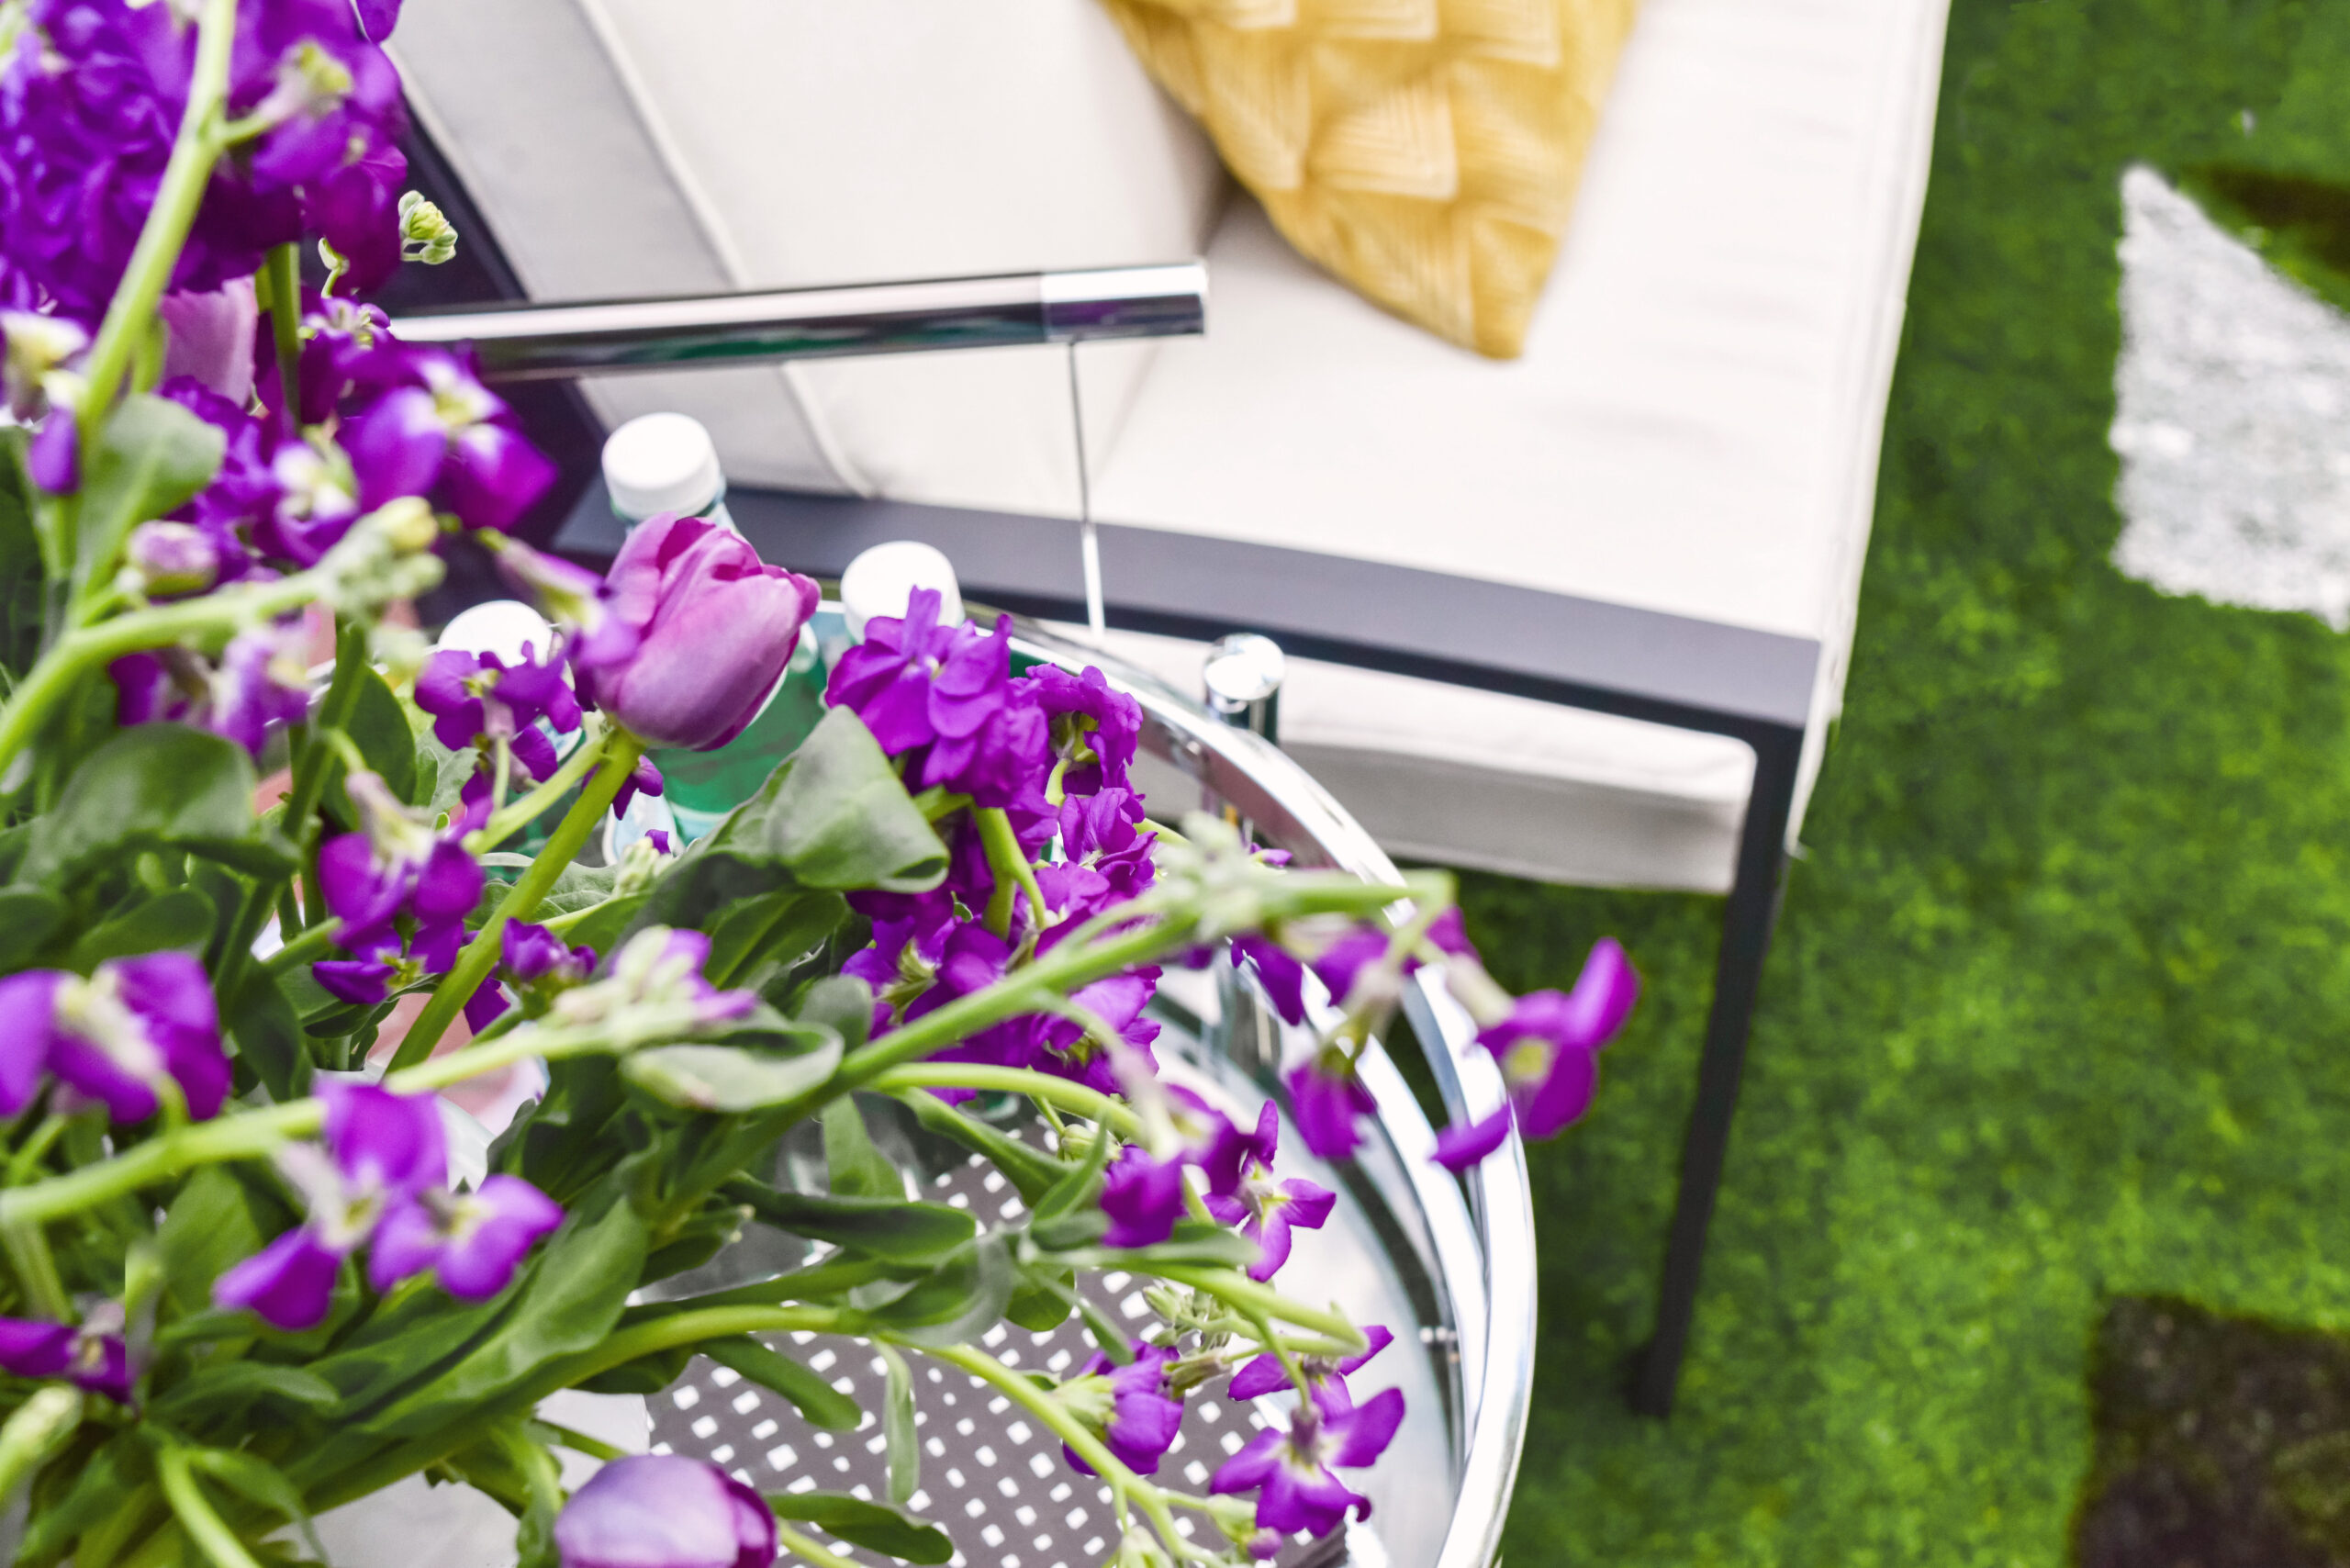 PROJECT REVEAL: HOW TO CREATE AN OUTDOOR OASIS IN YOUR OWN BACKYARD